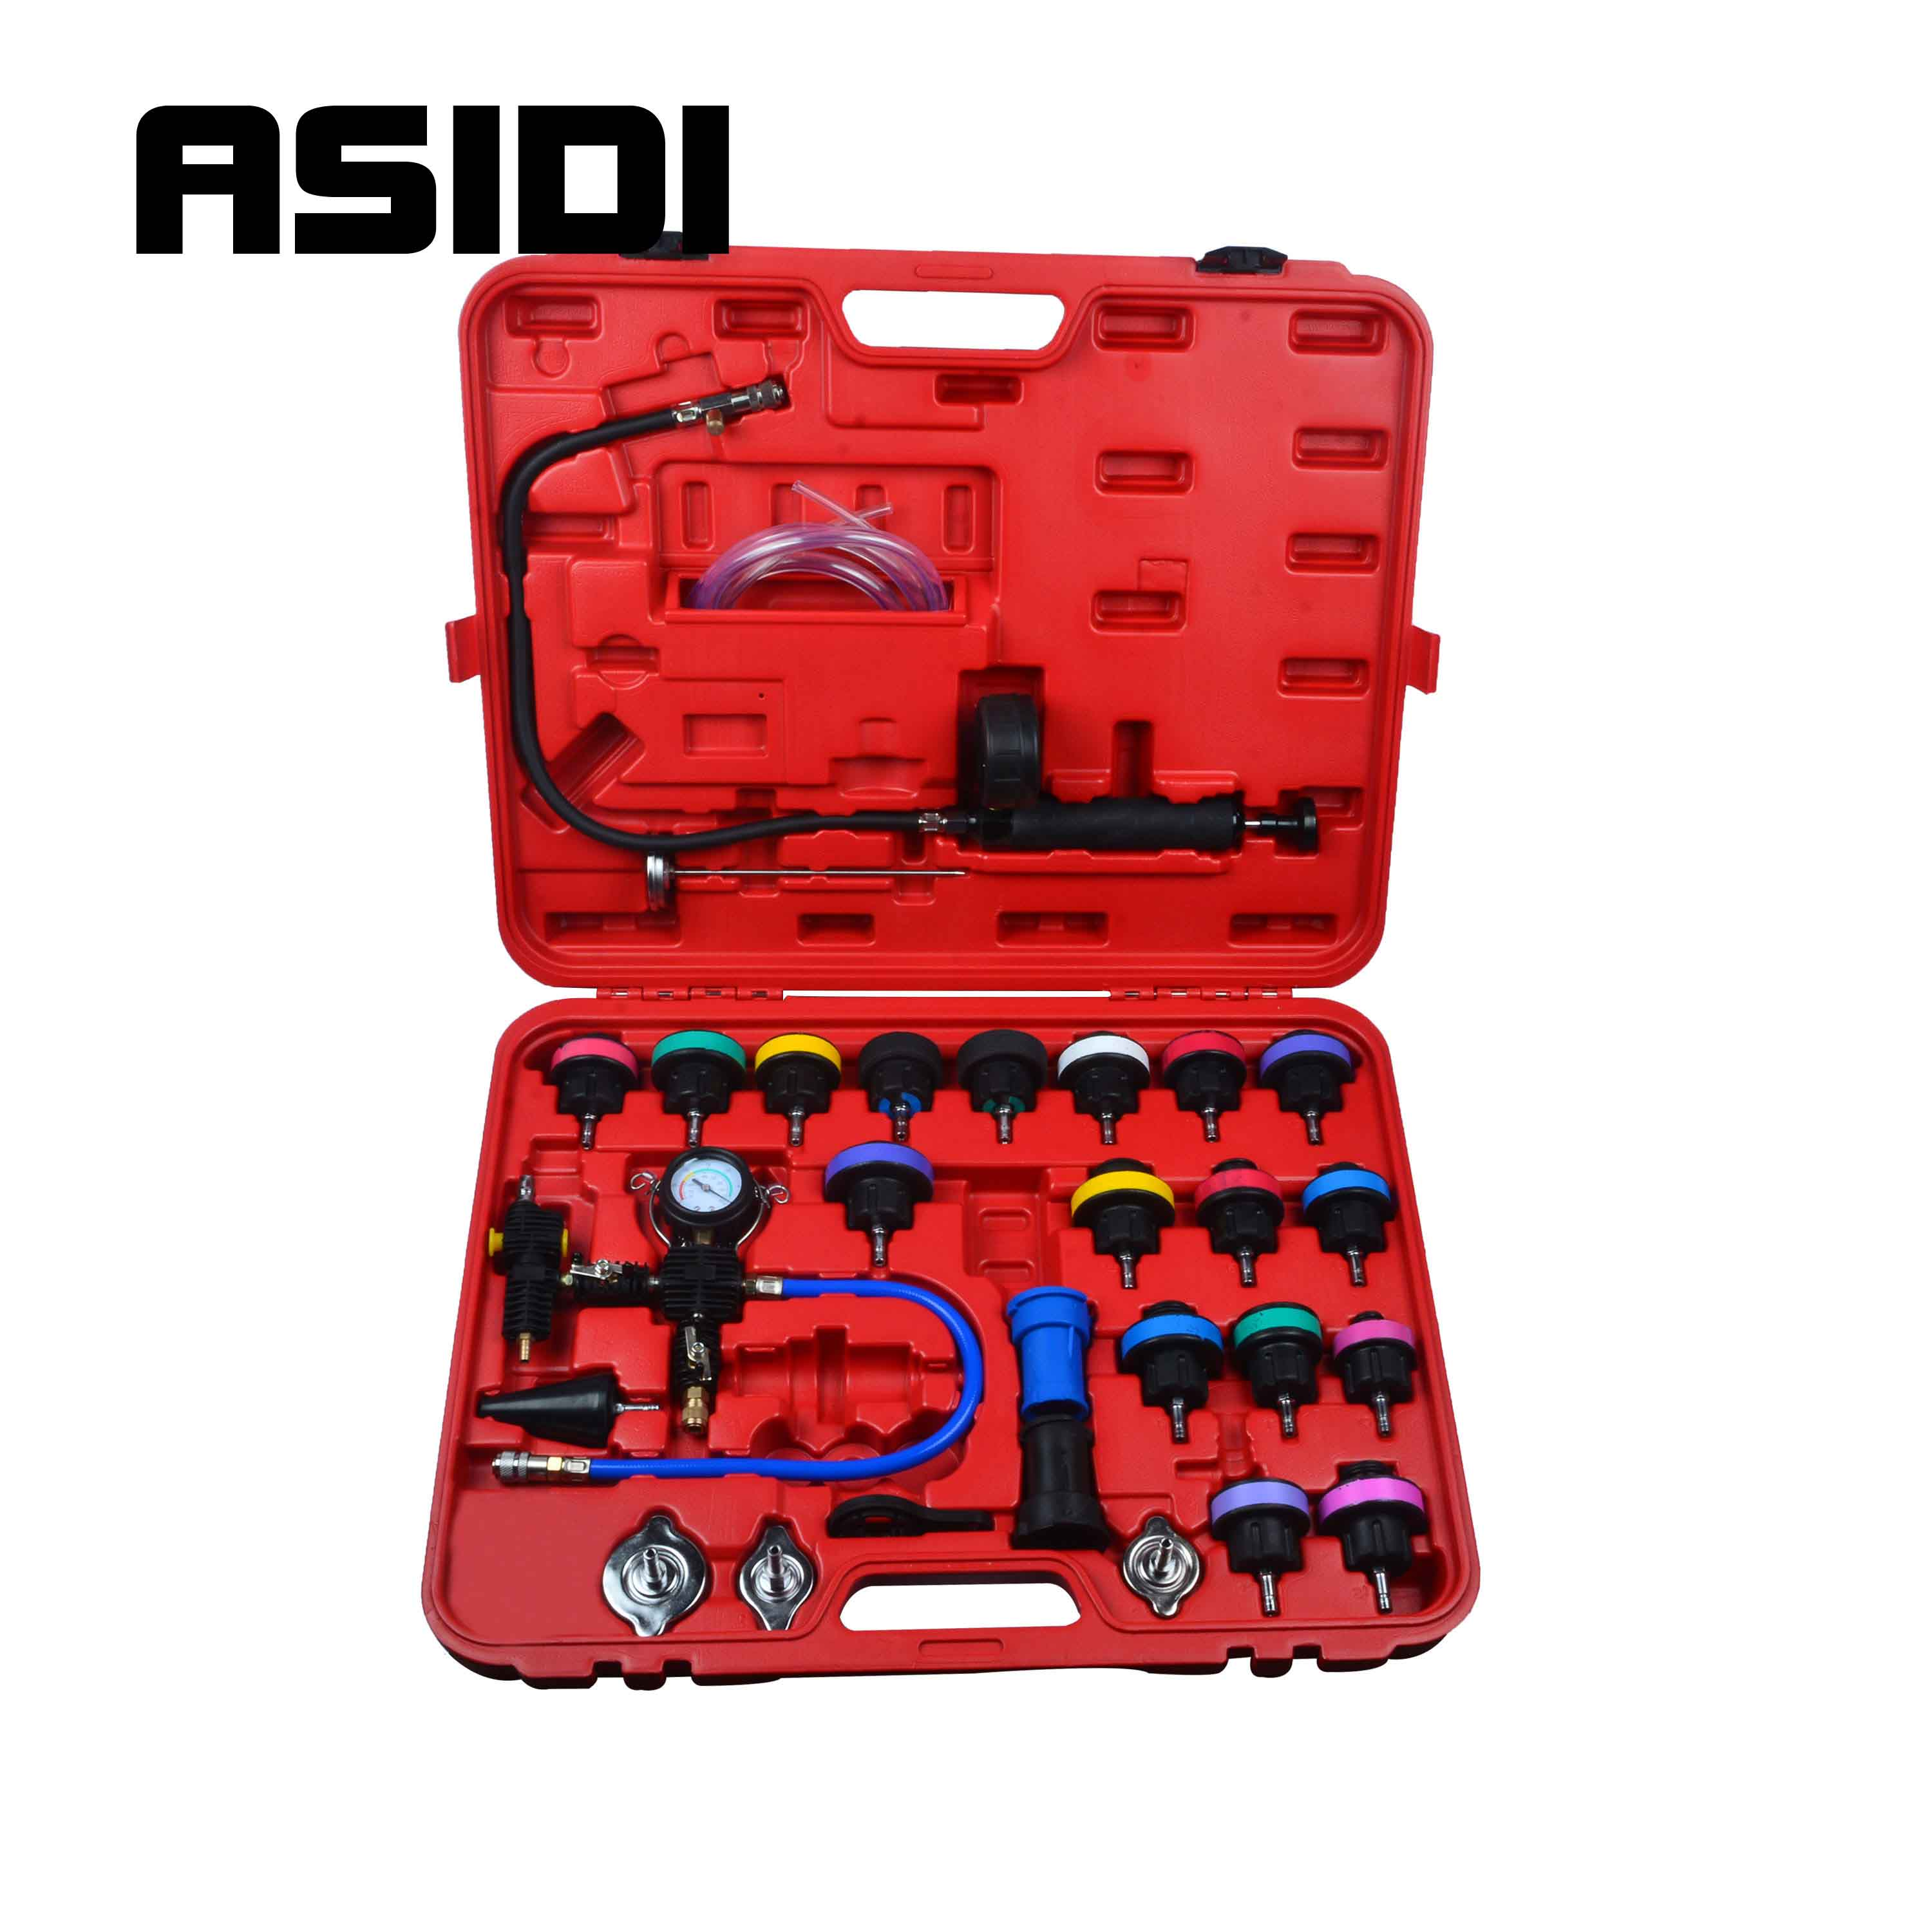 New 28Pcs Master Cooling Radiator Pressure Tester With Vacuum Purge & Refill Kits